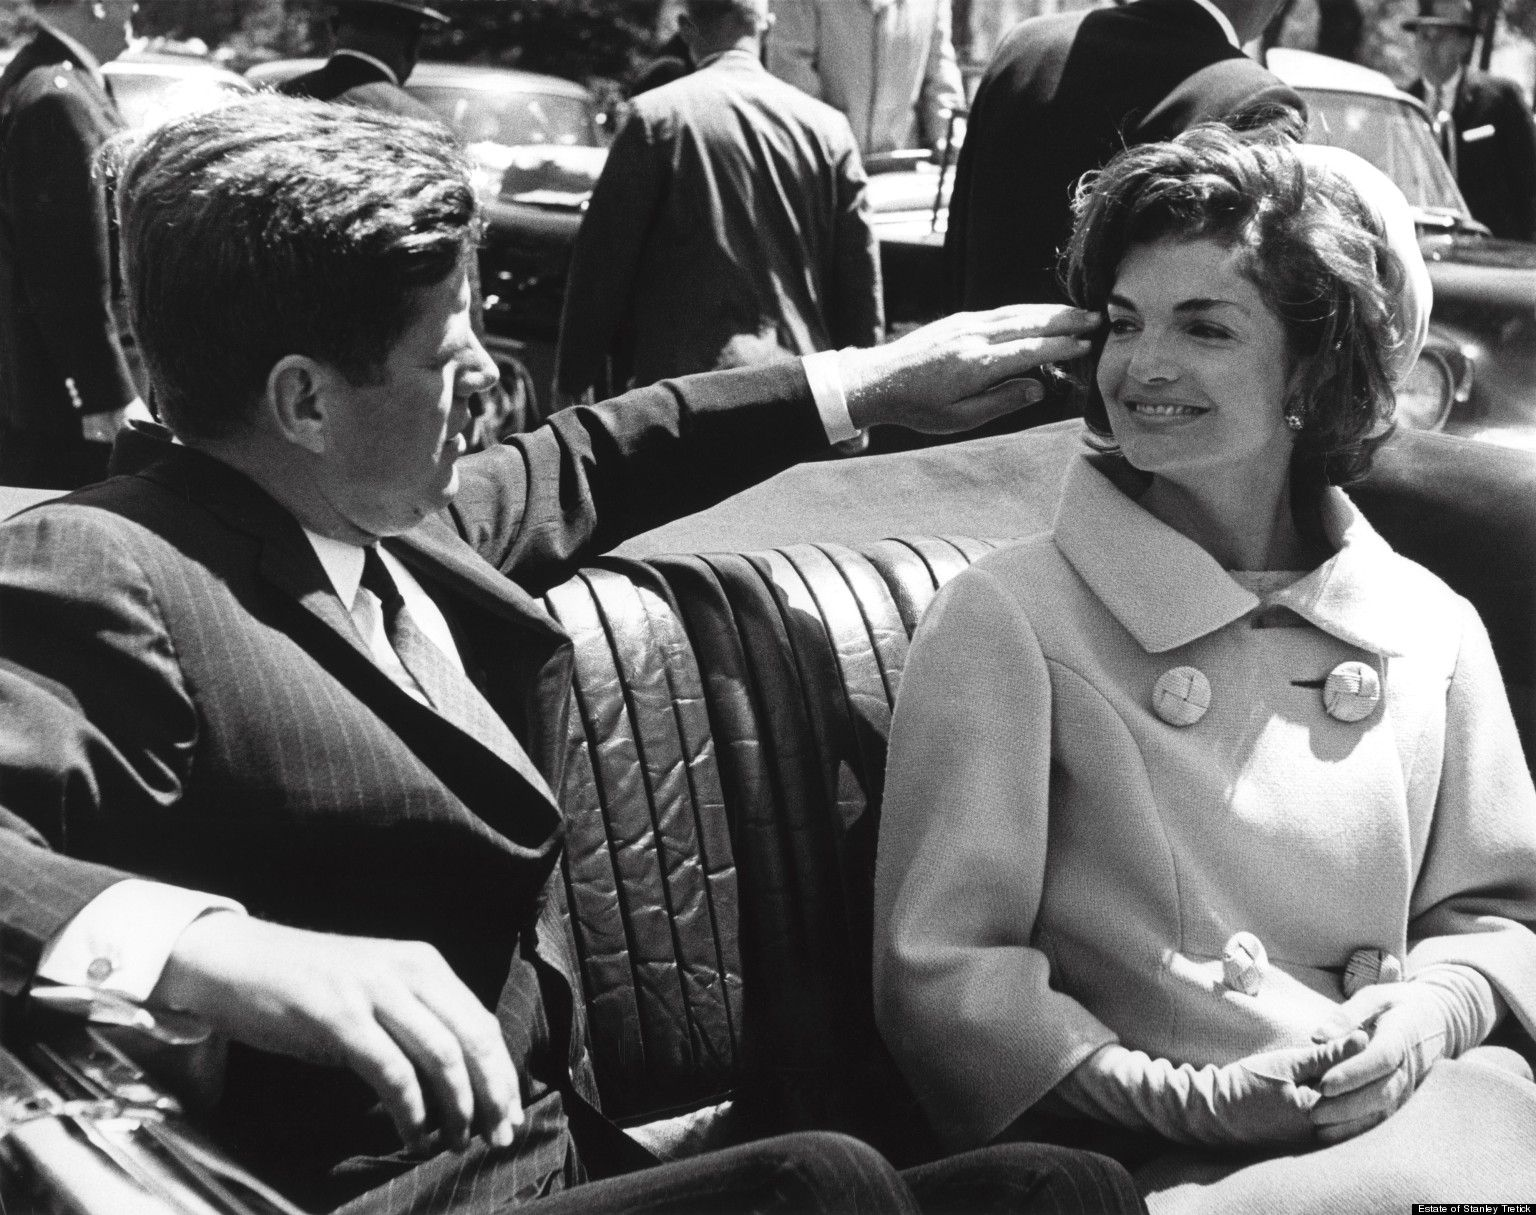 Look jackie o 39 s favorite photo of her and jfk jackie for Jackie o house vaucluse